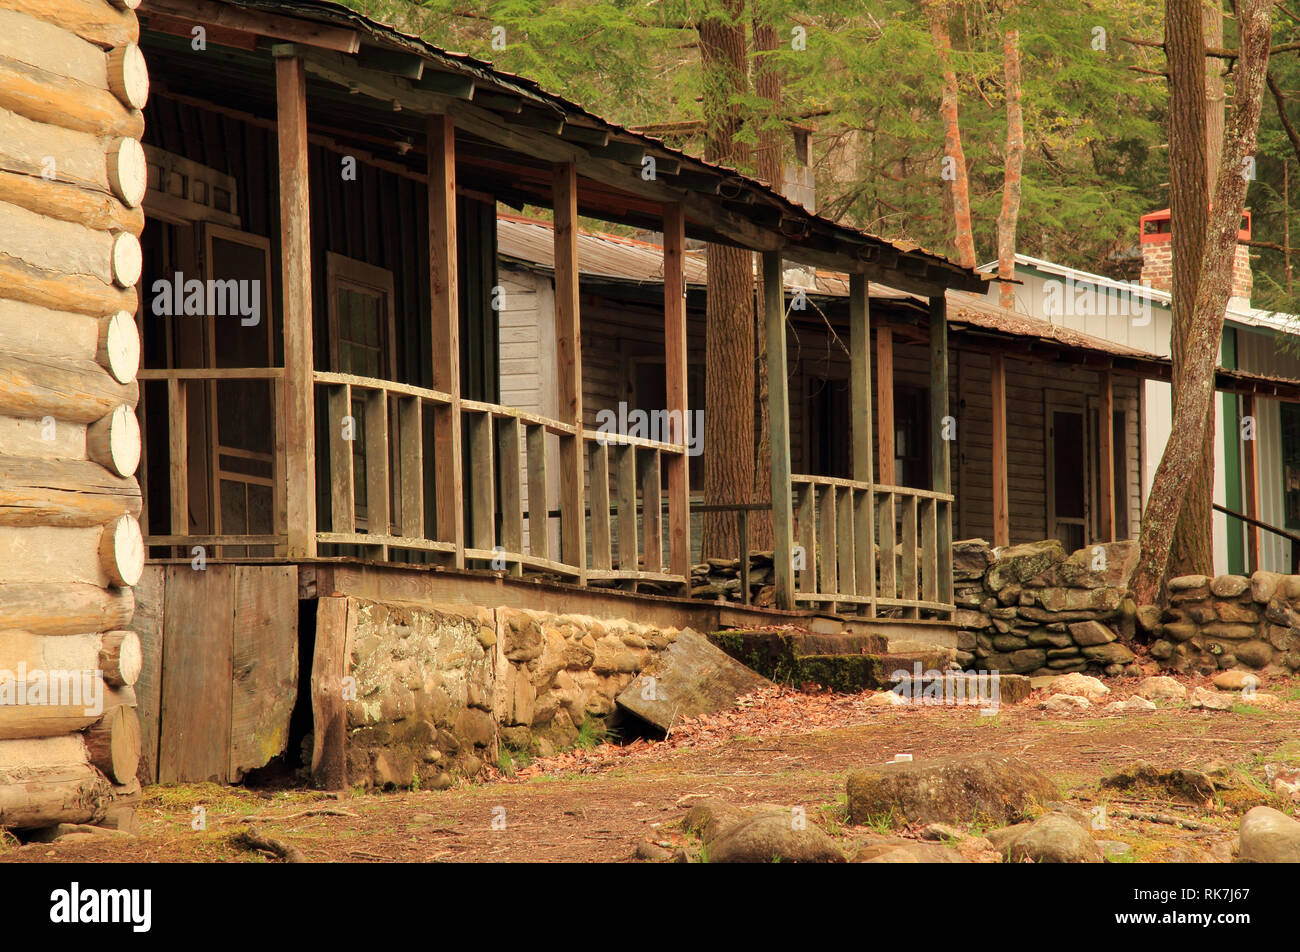 The Elkmont historic district in Great Smokey Mountains National Park is notable for several rustic cabins preserved by the National Park Service Stock Photo